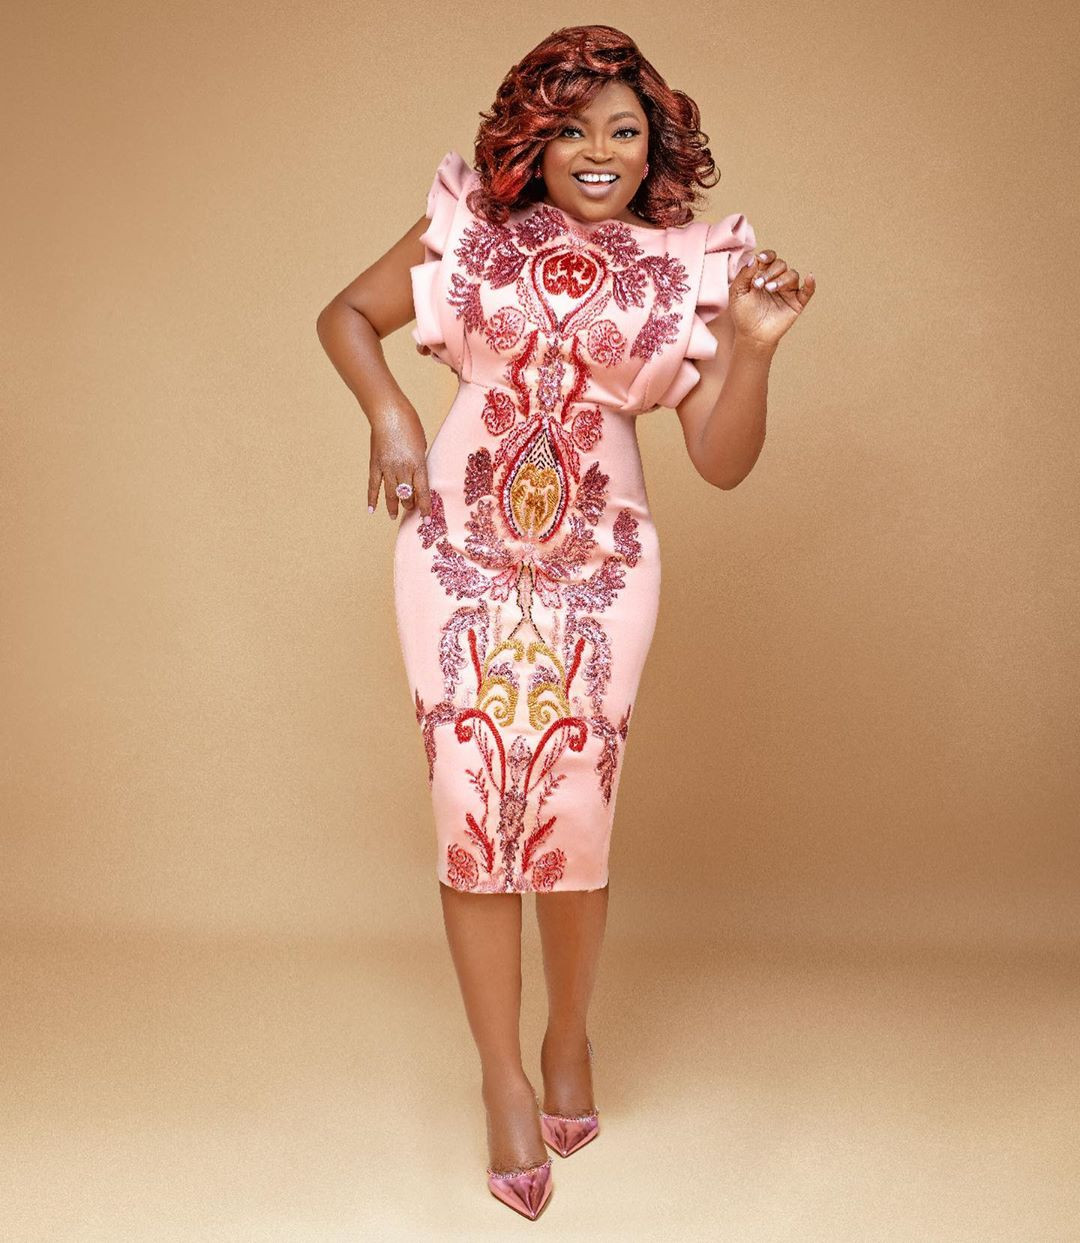 Funke Akindele-Bello Looks So Charming, Shares Blazing Photos As She Hits 43 Today, Conquest Online Magazine